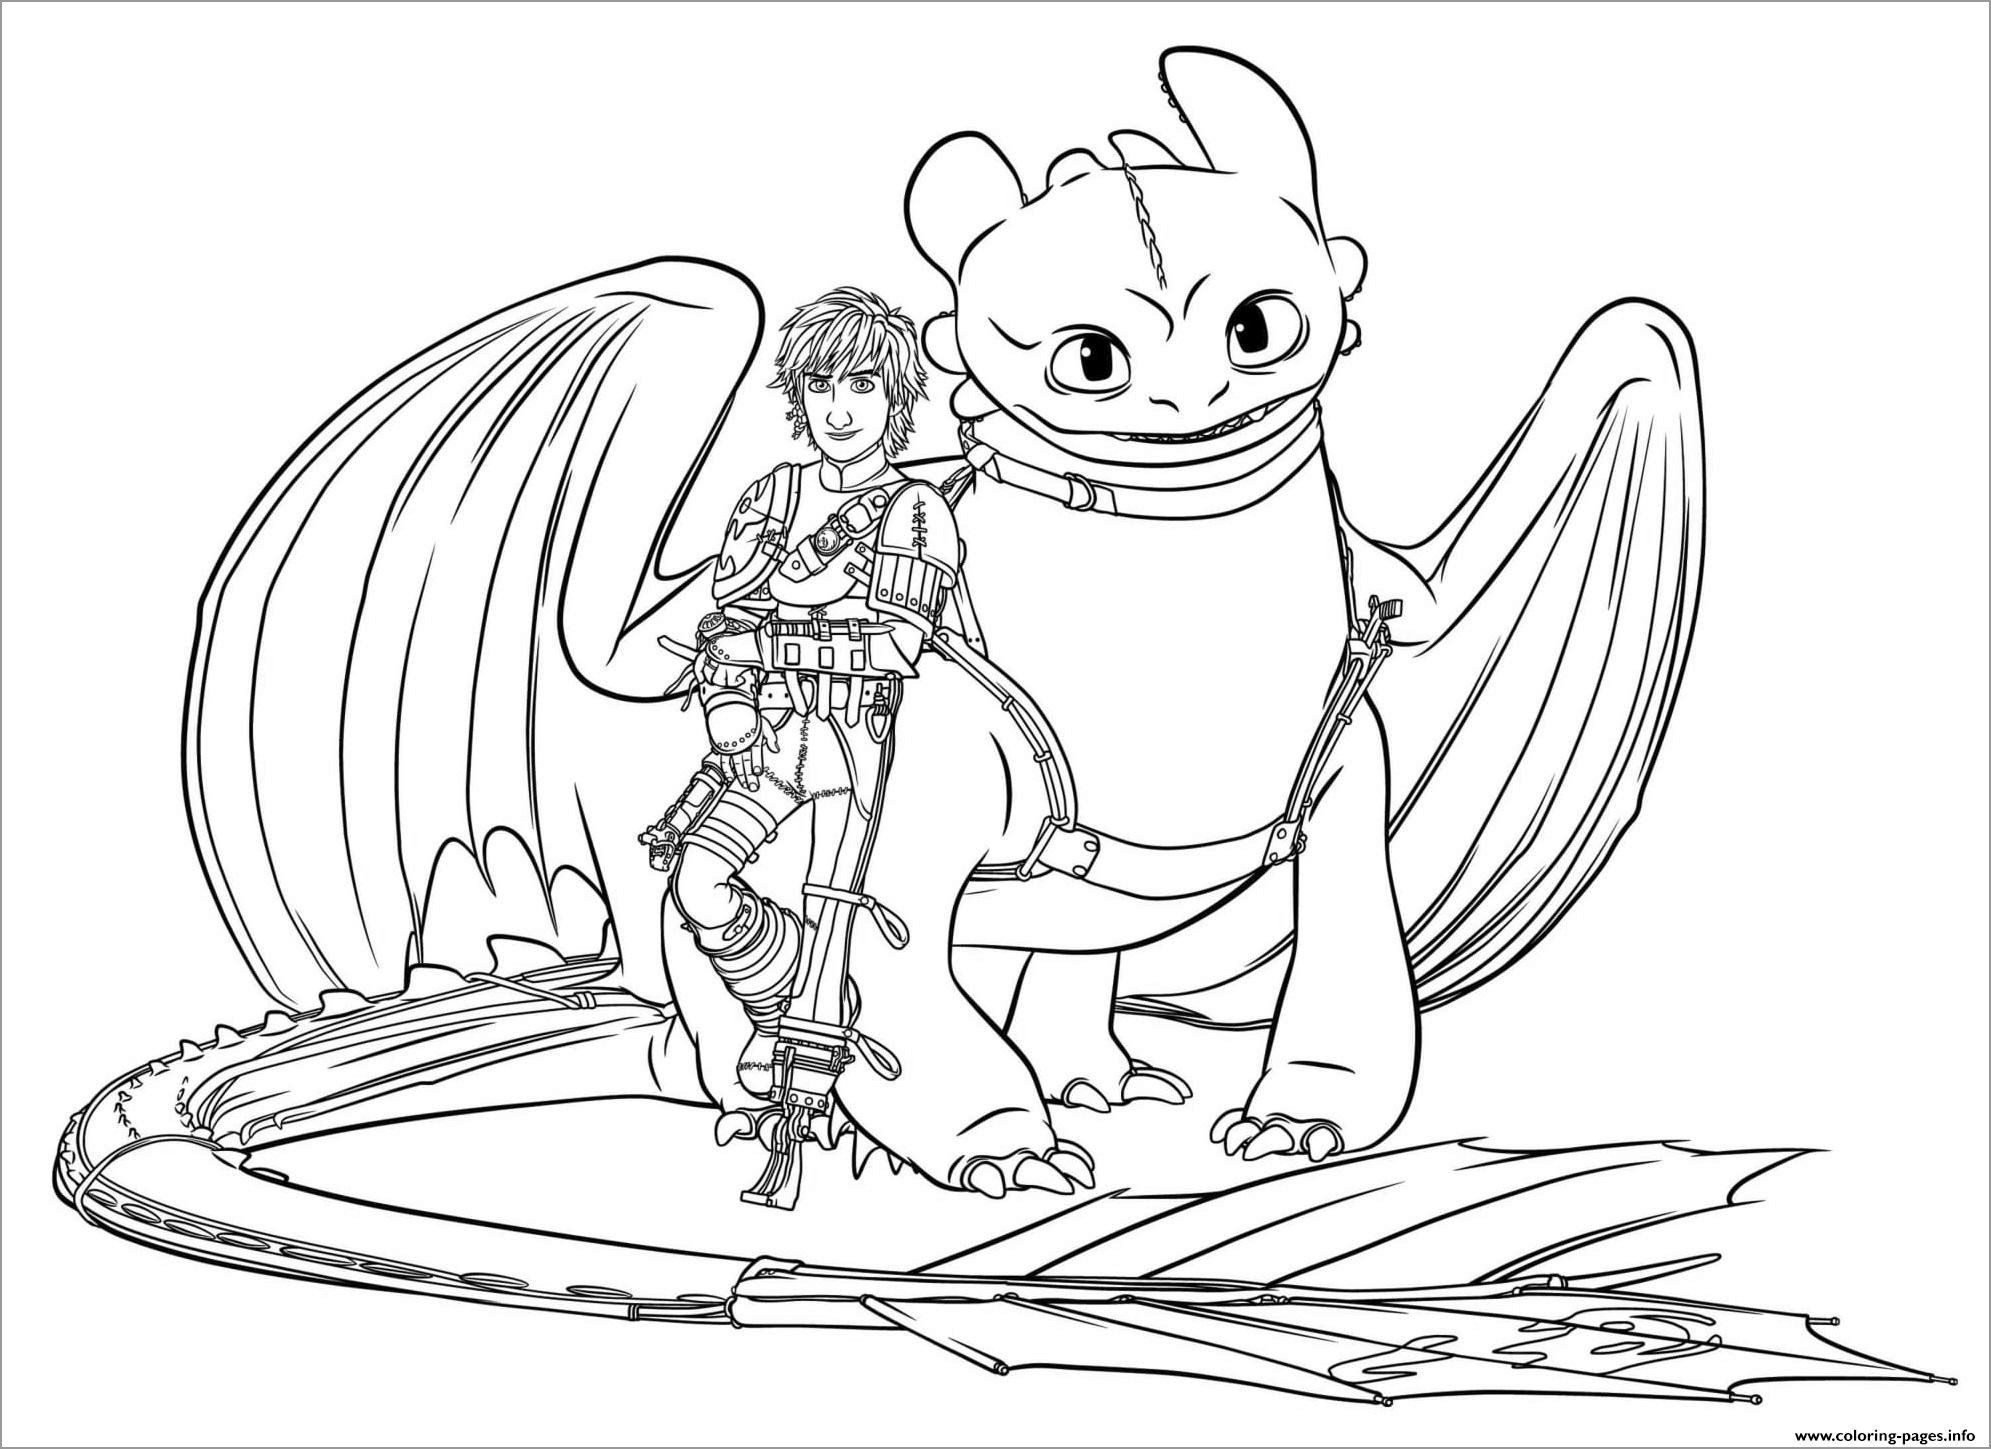 how to train your dragon coloring pages online how to train your dragon coloring pages your pages to coloring how dragon online train